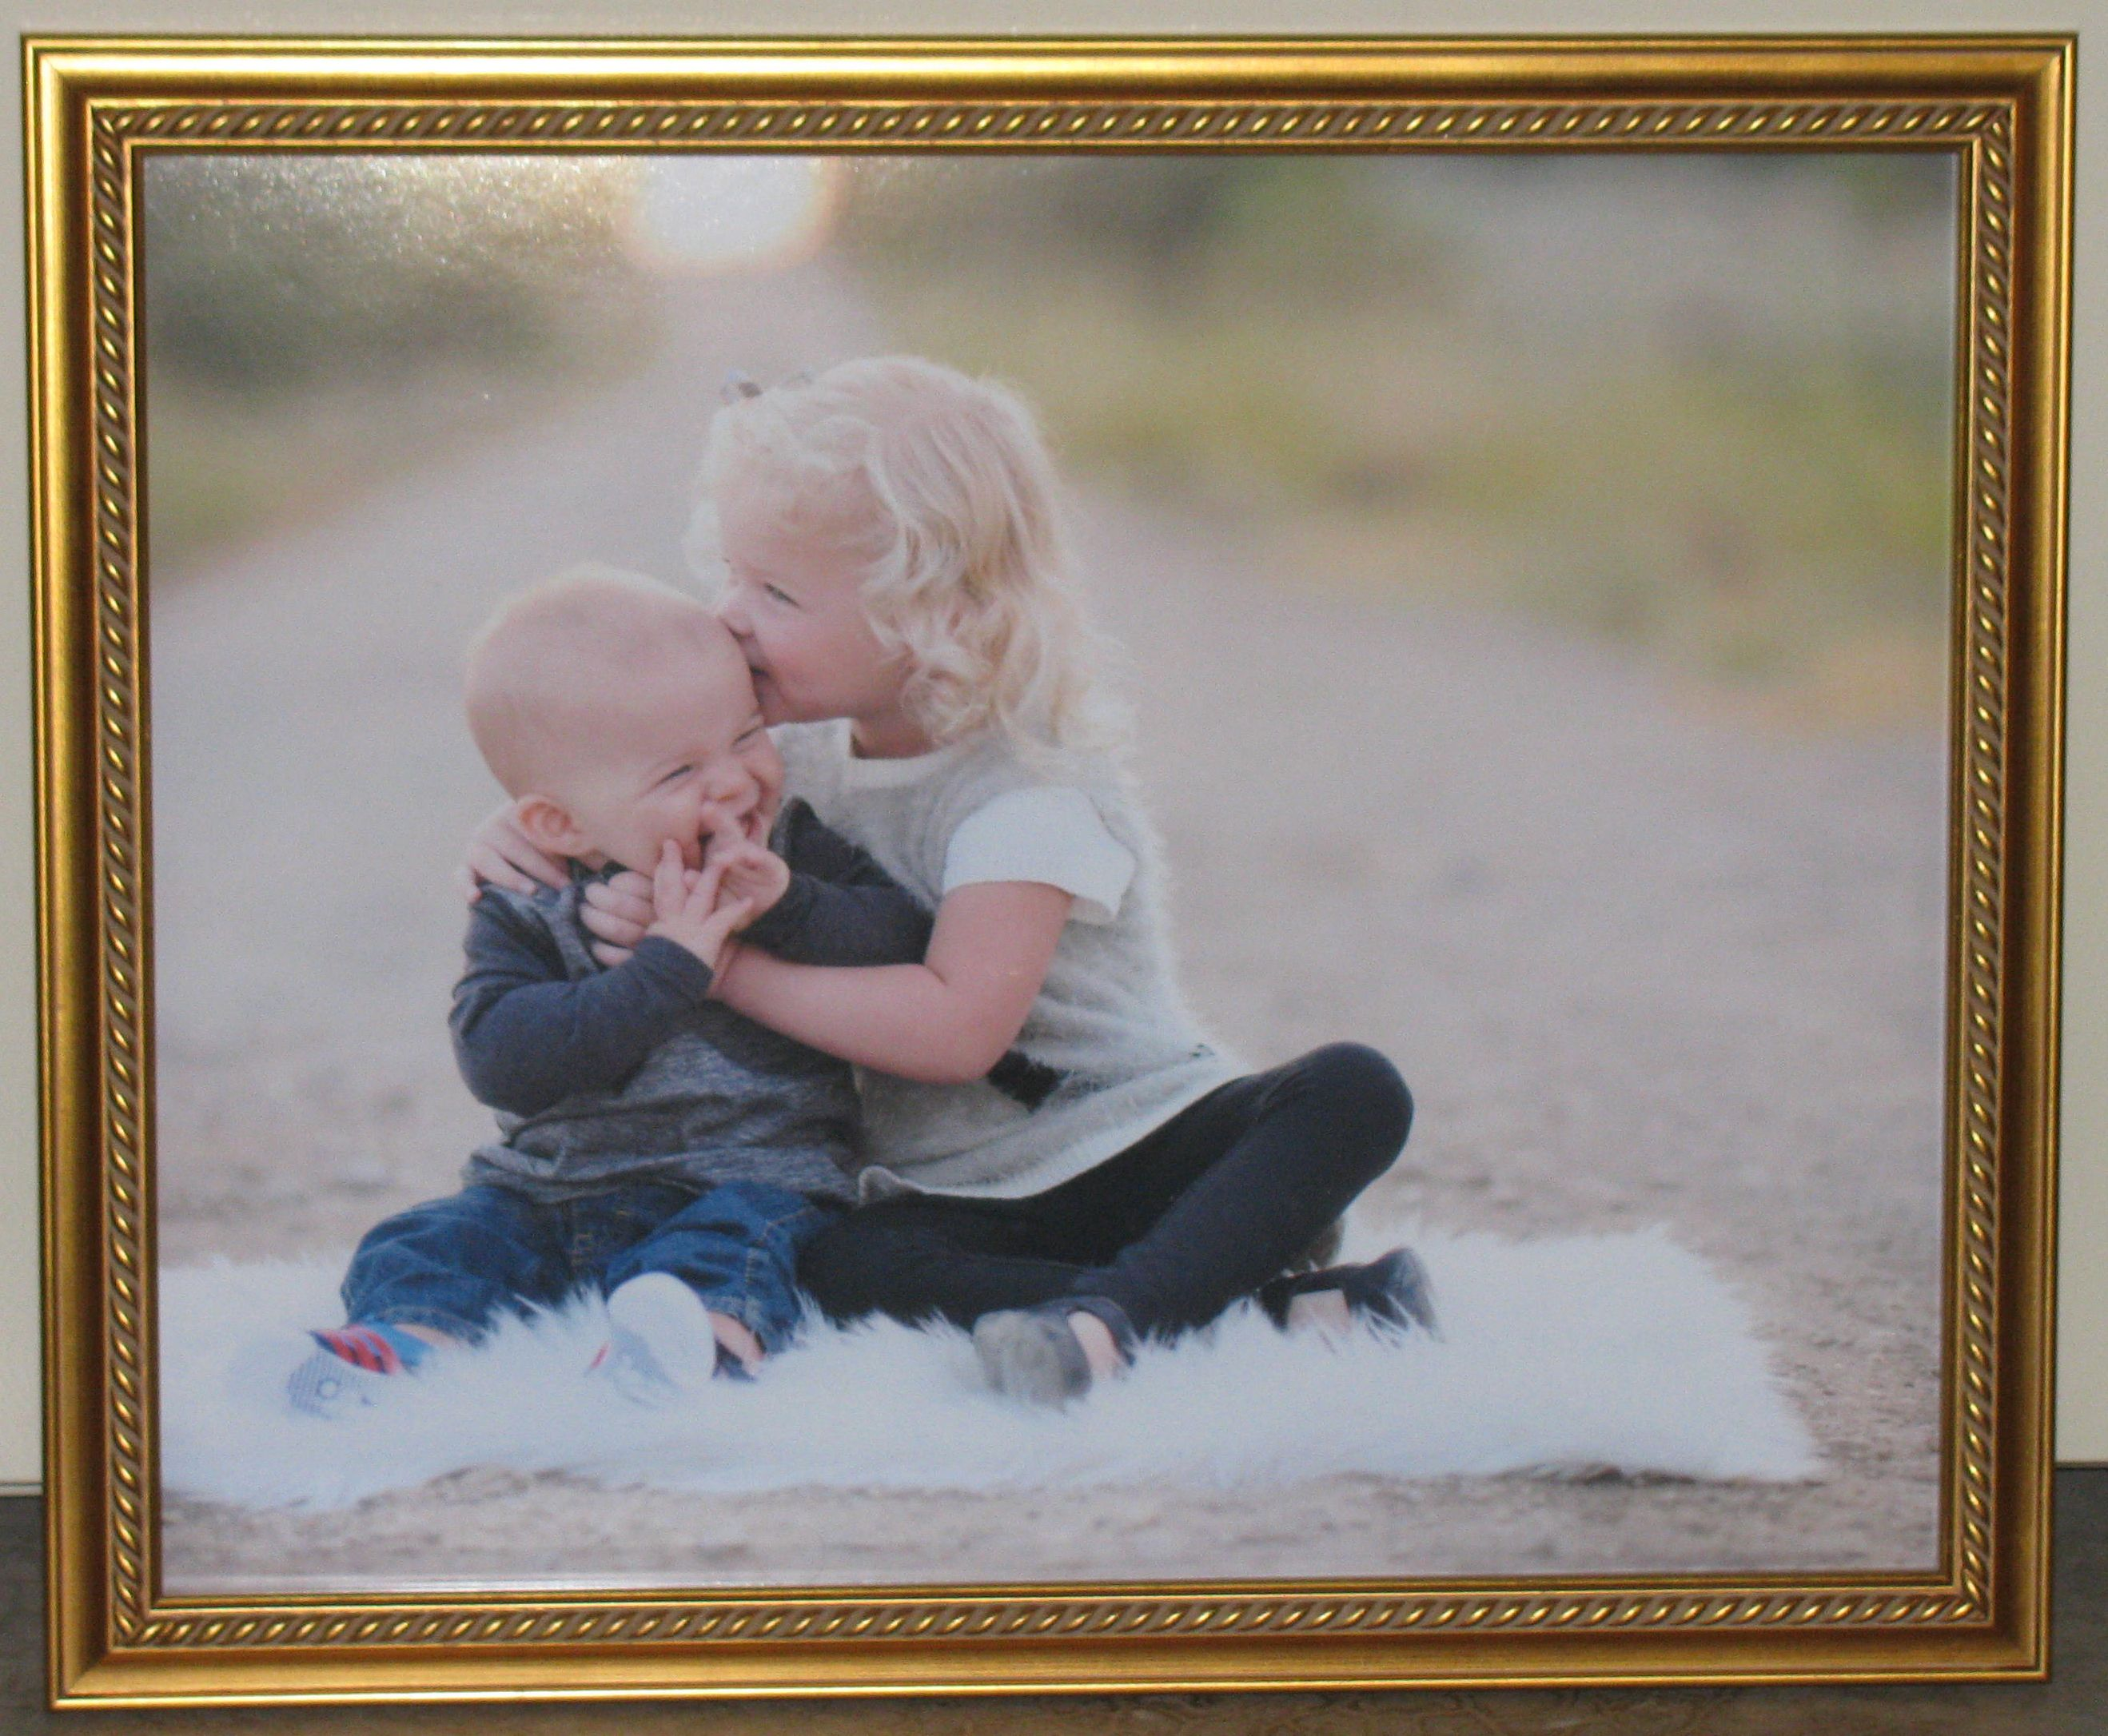 Brother & Sister portrait frame - framed by Custom Framing to you ...